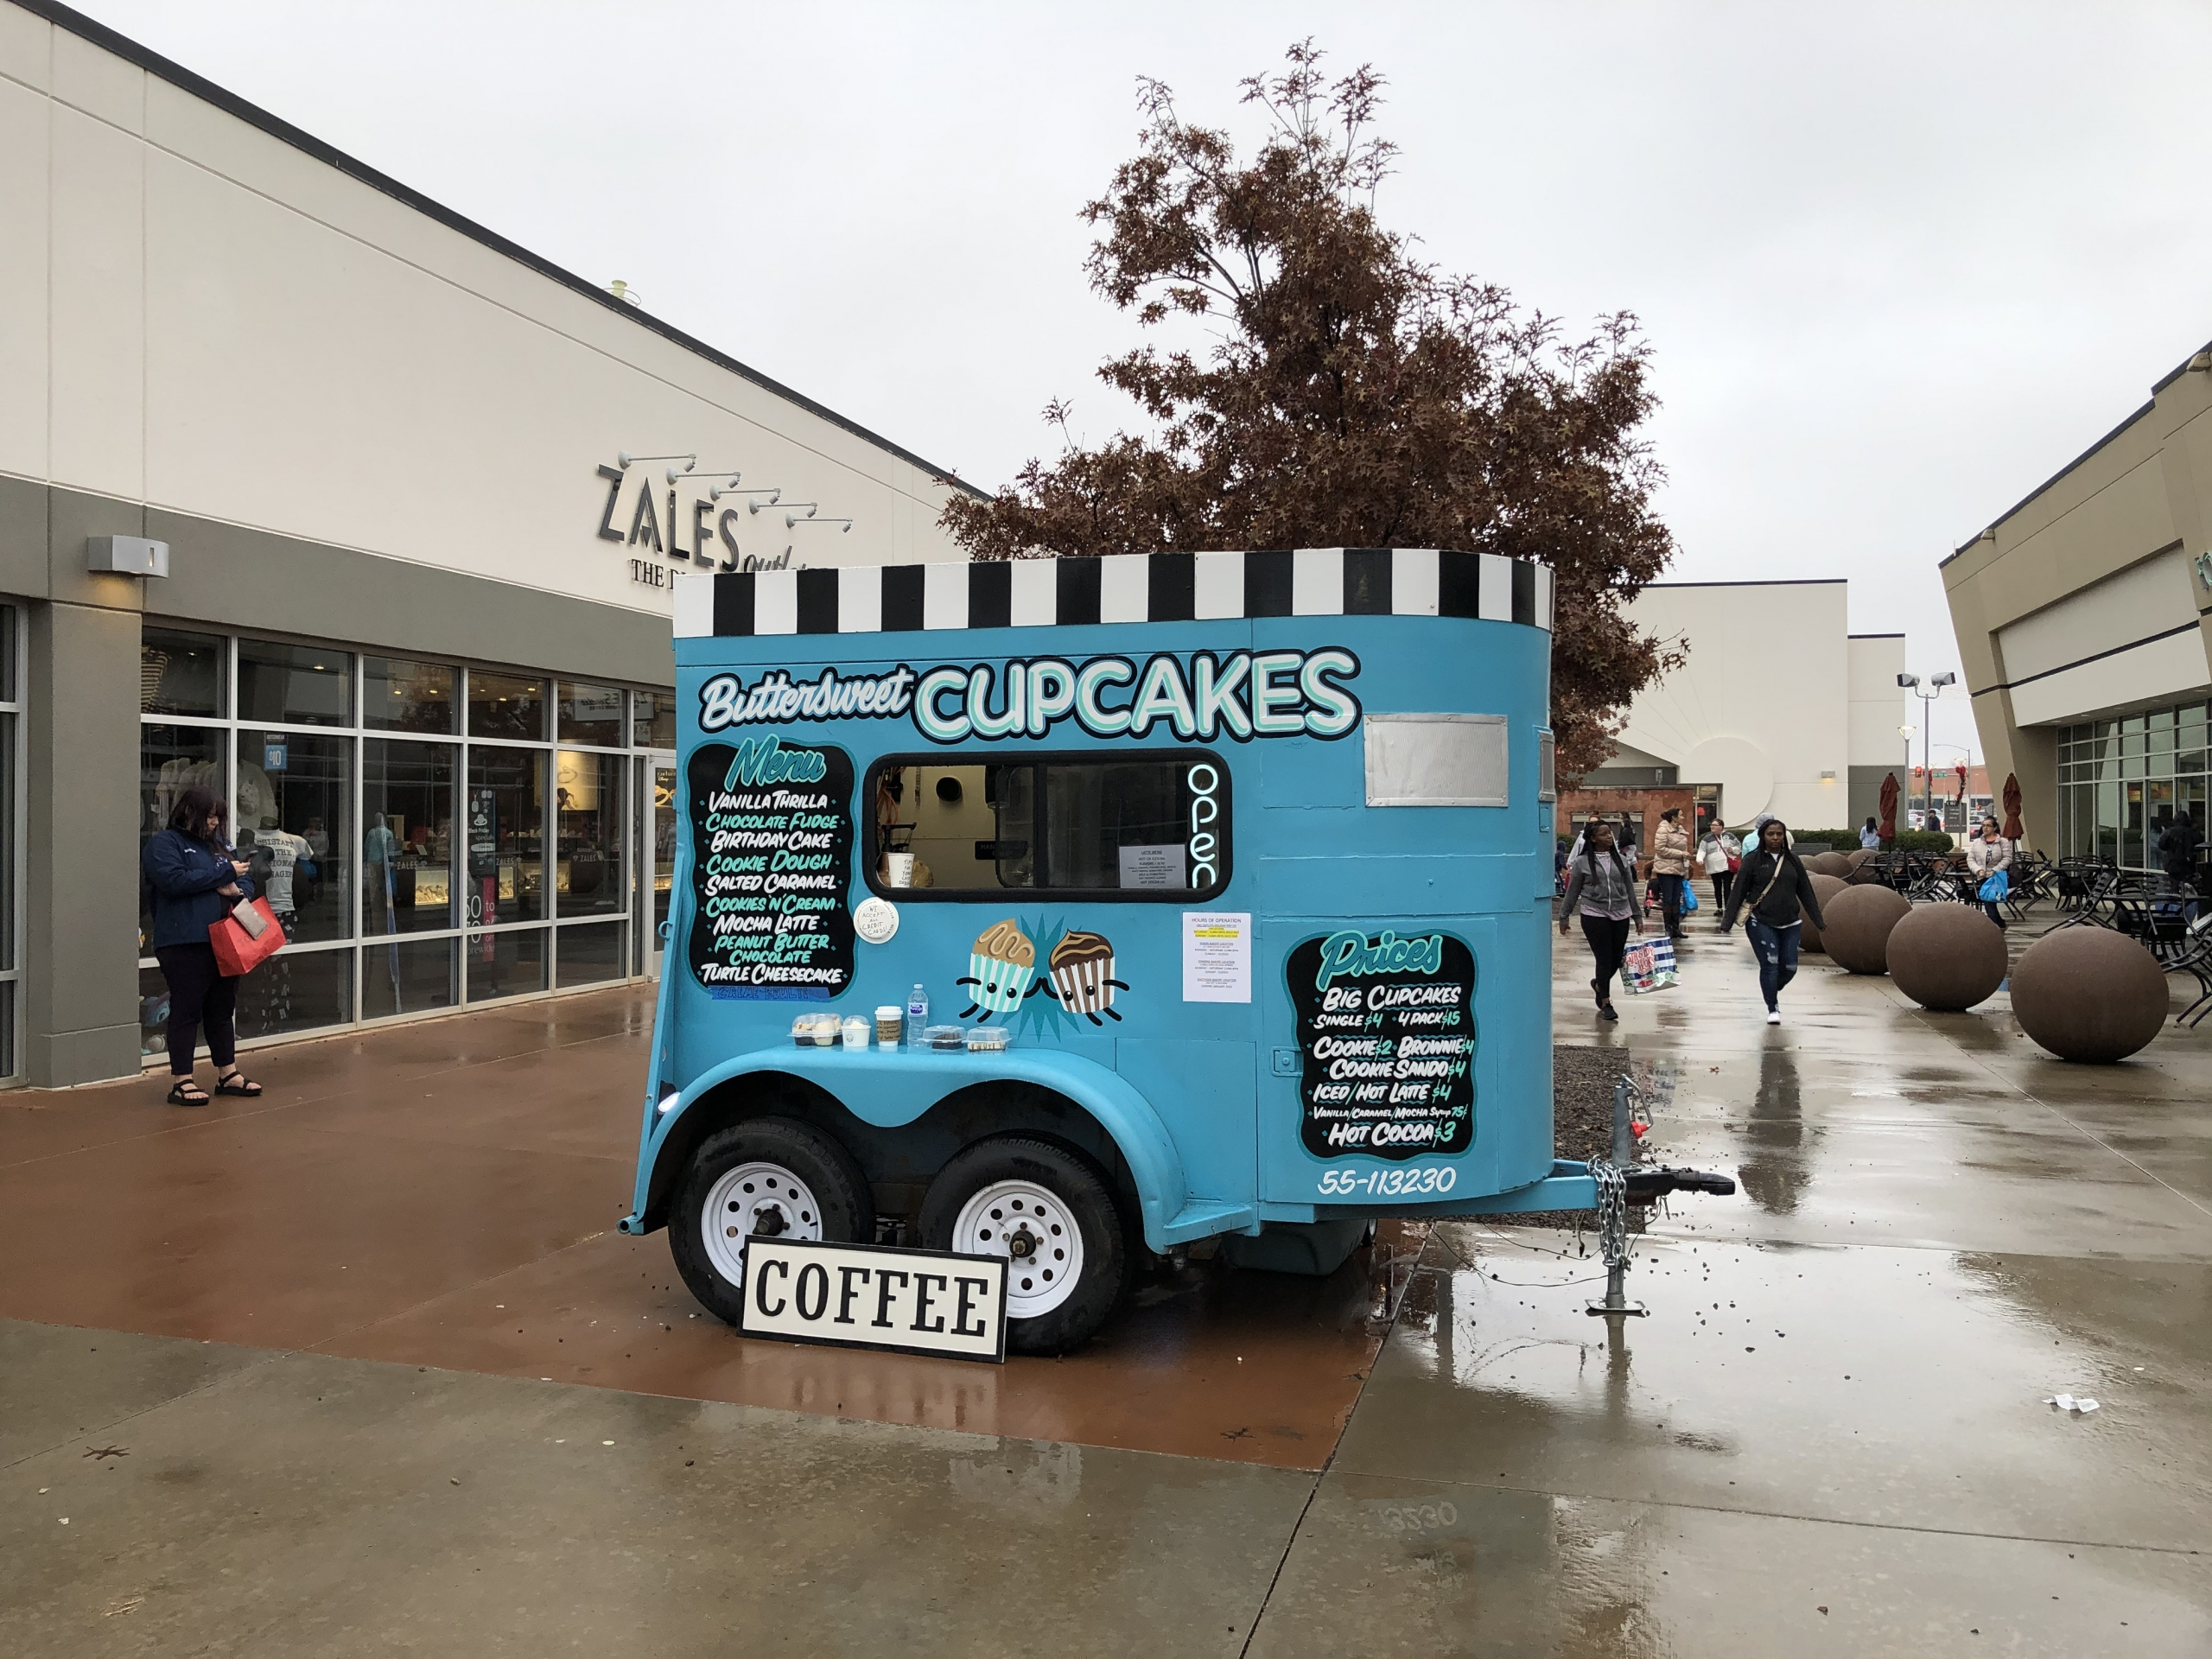 ButterSweet Cupcakes trailer at the OKC Outlet Shoppes